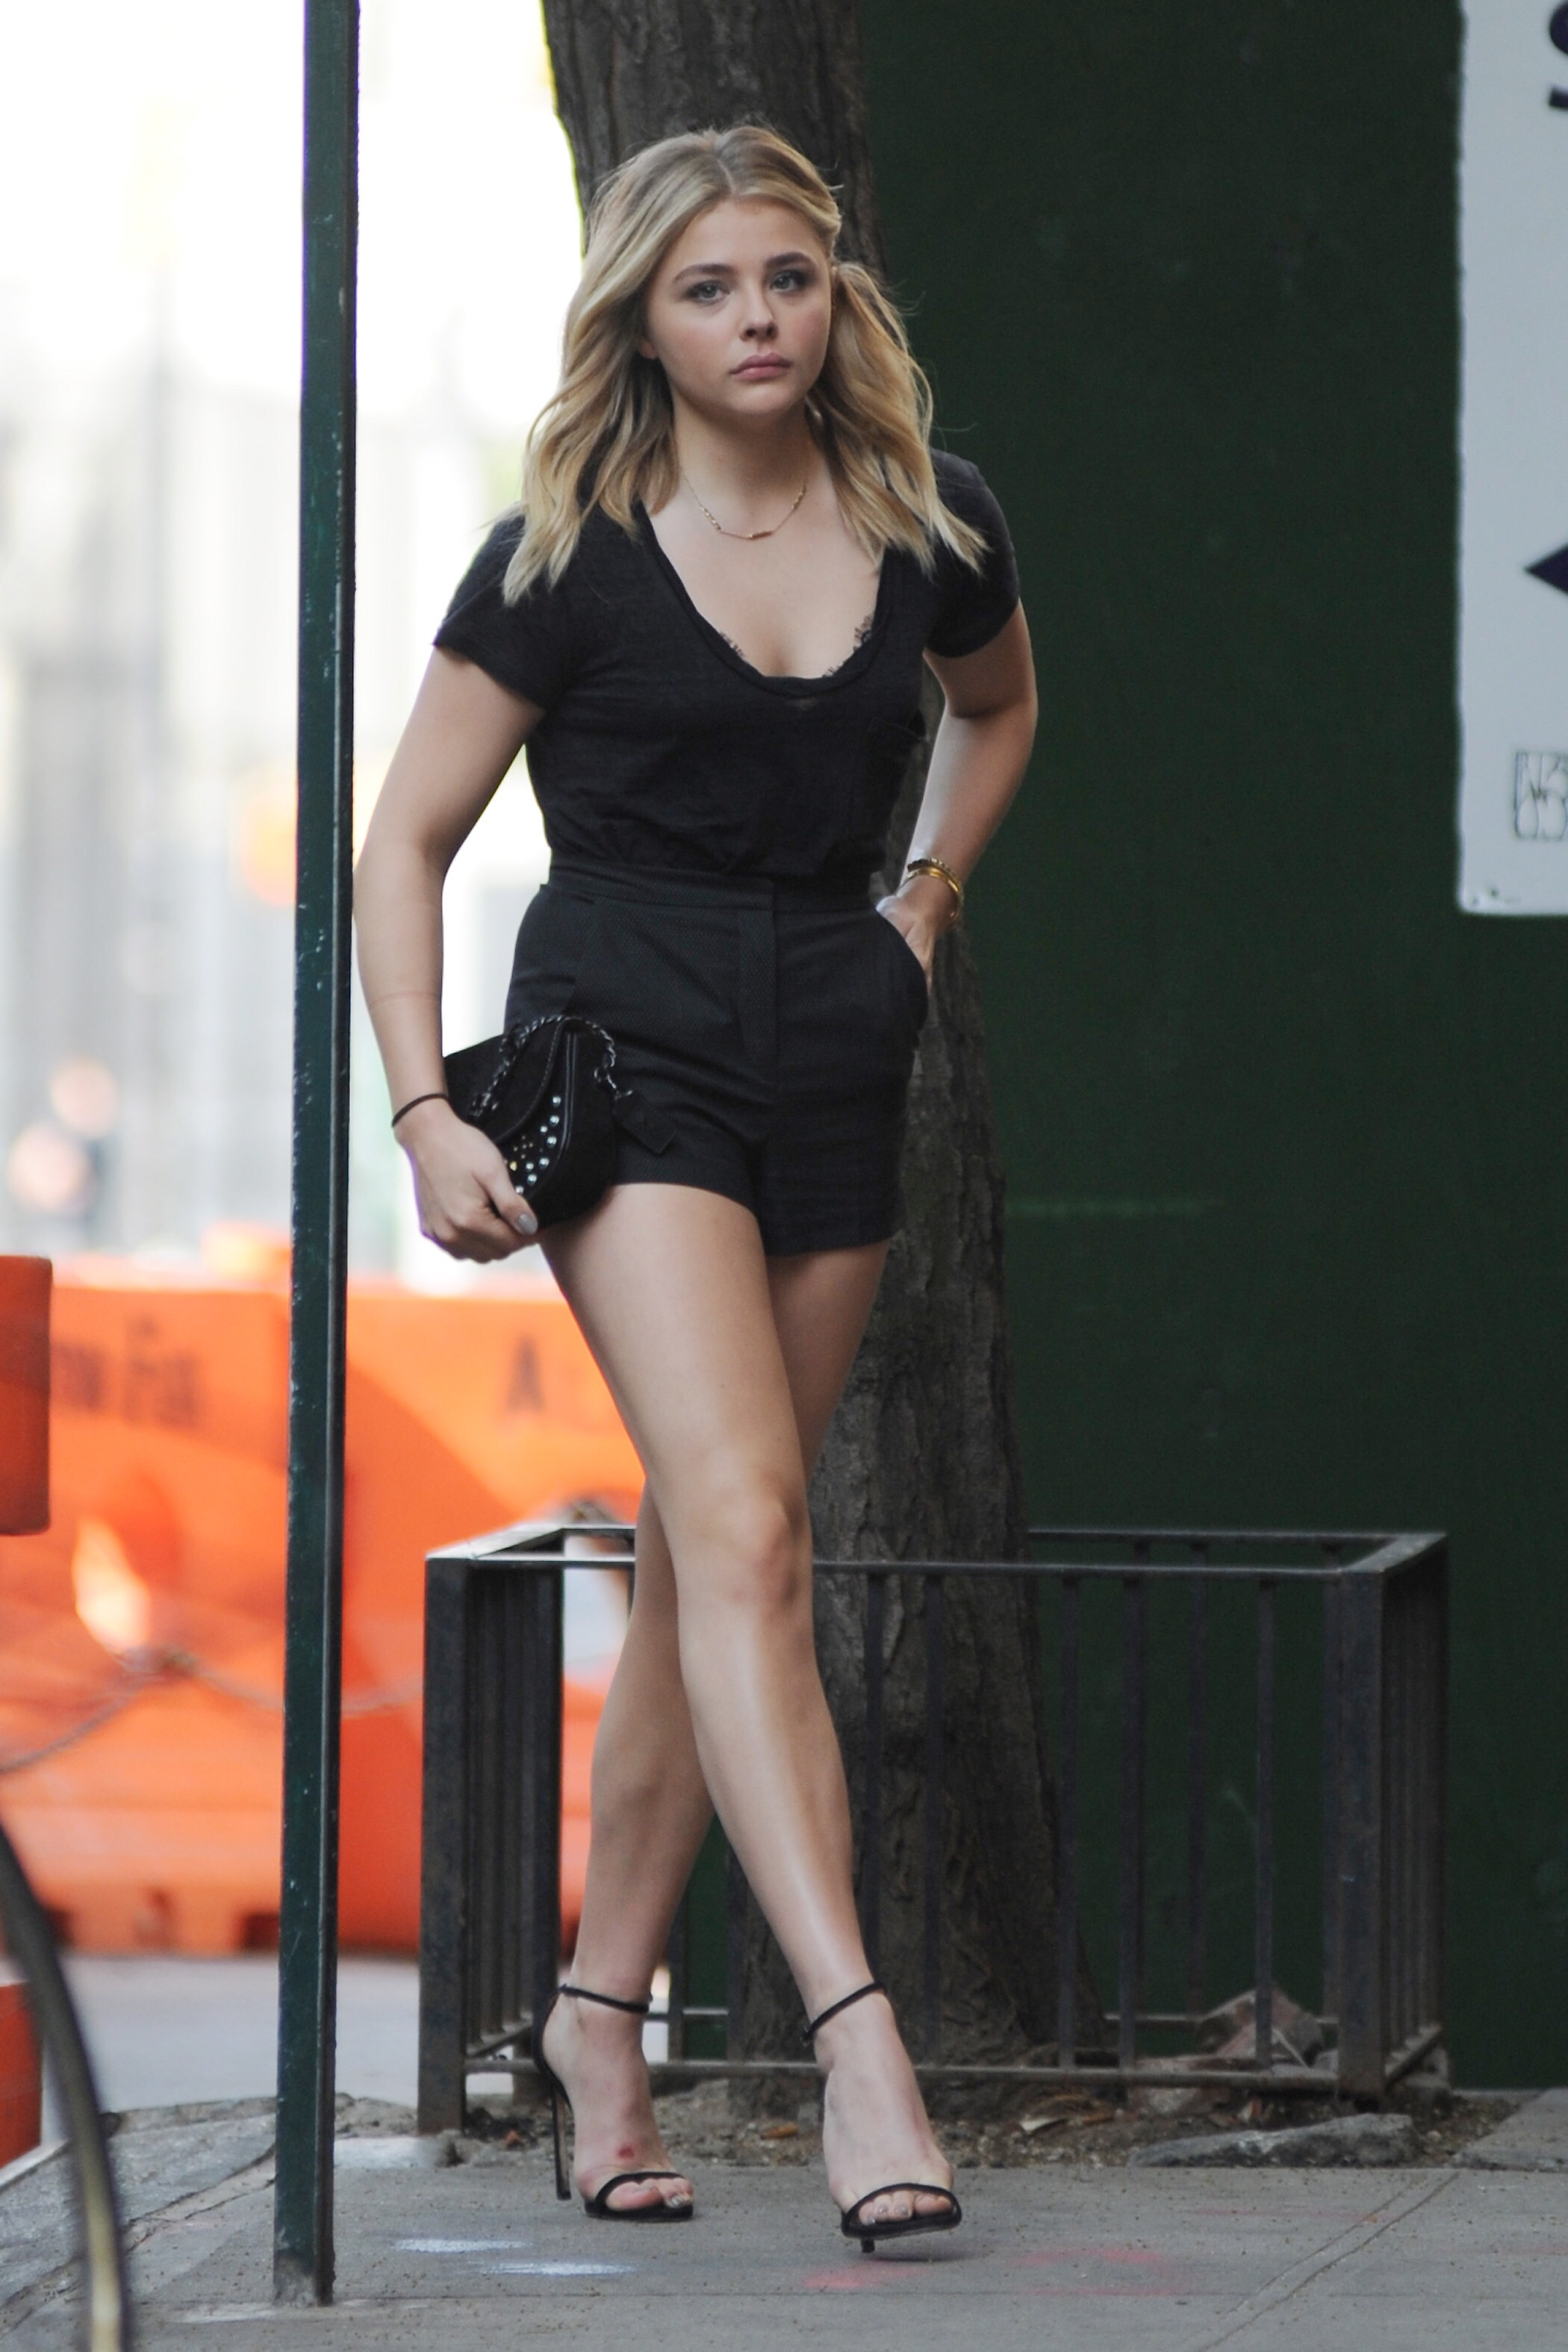 Chlo Grace Moretz  Only In High Heels-4273